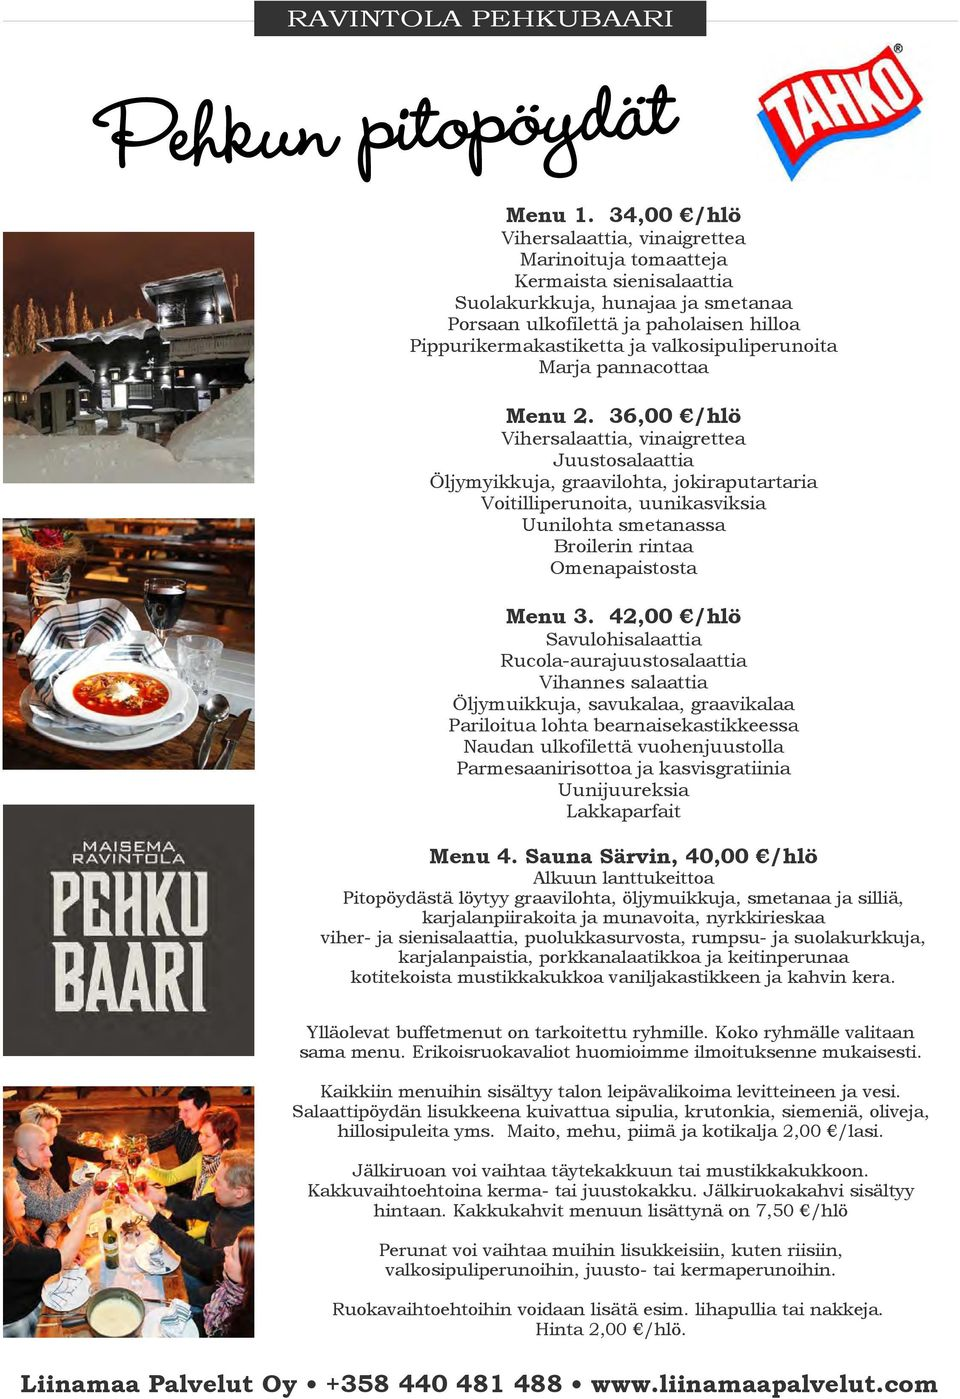 Marja pannacottaa Menu 2.